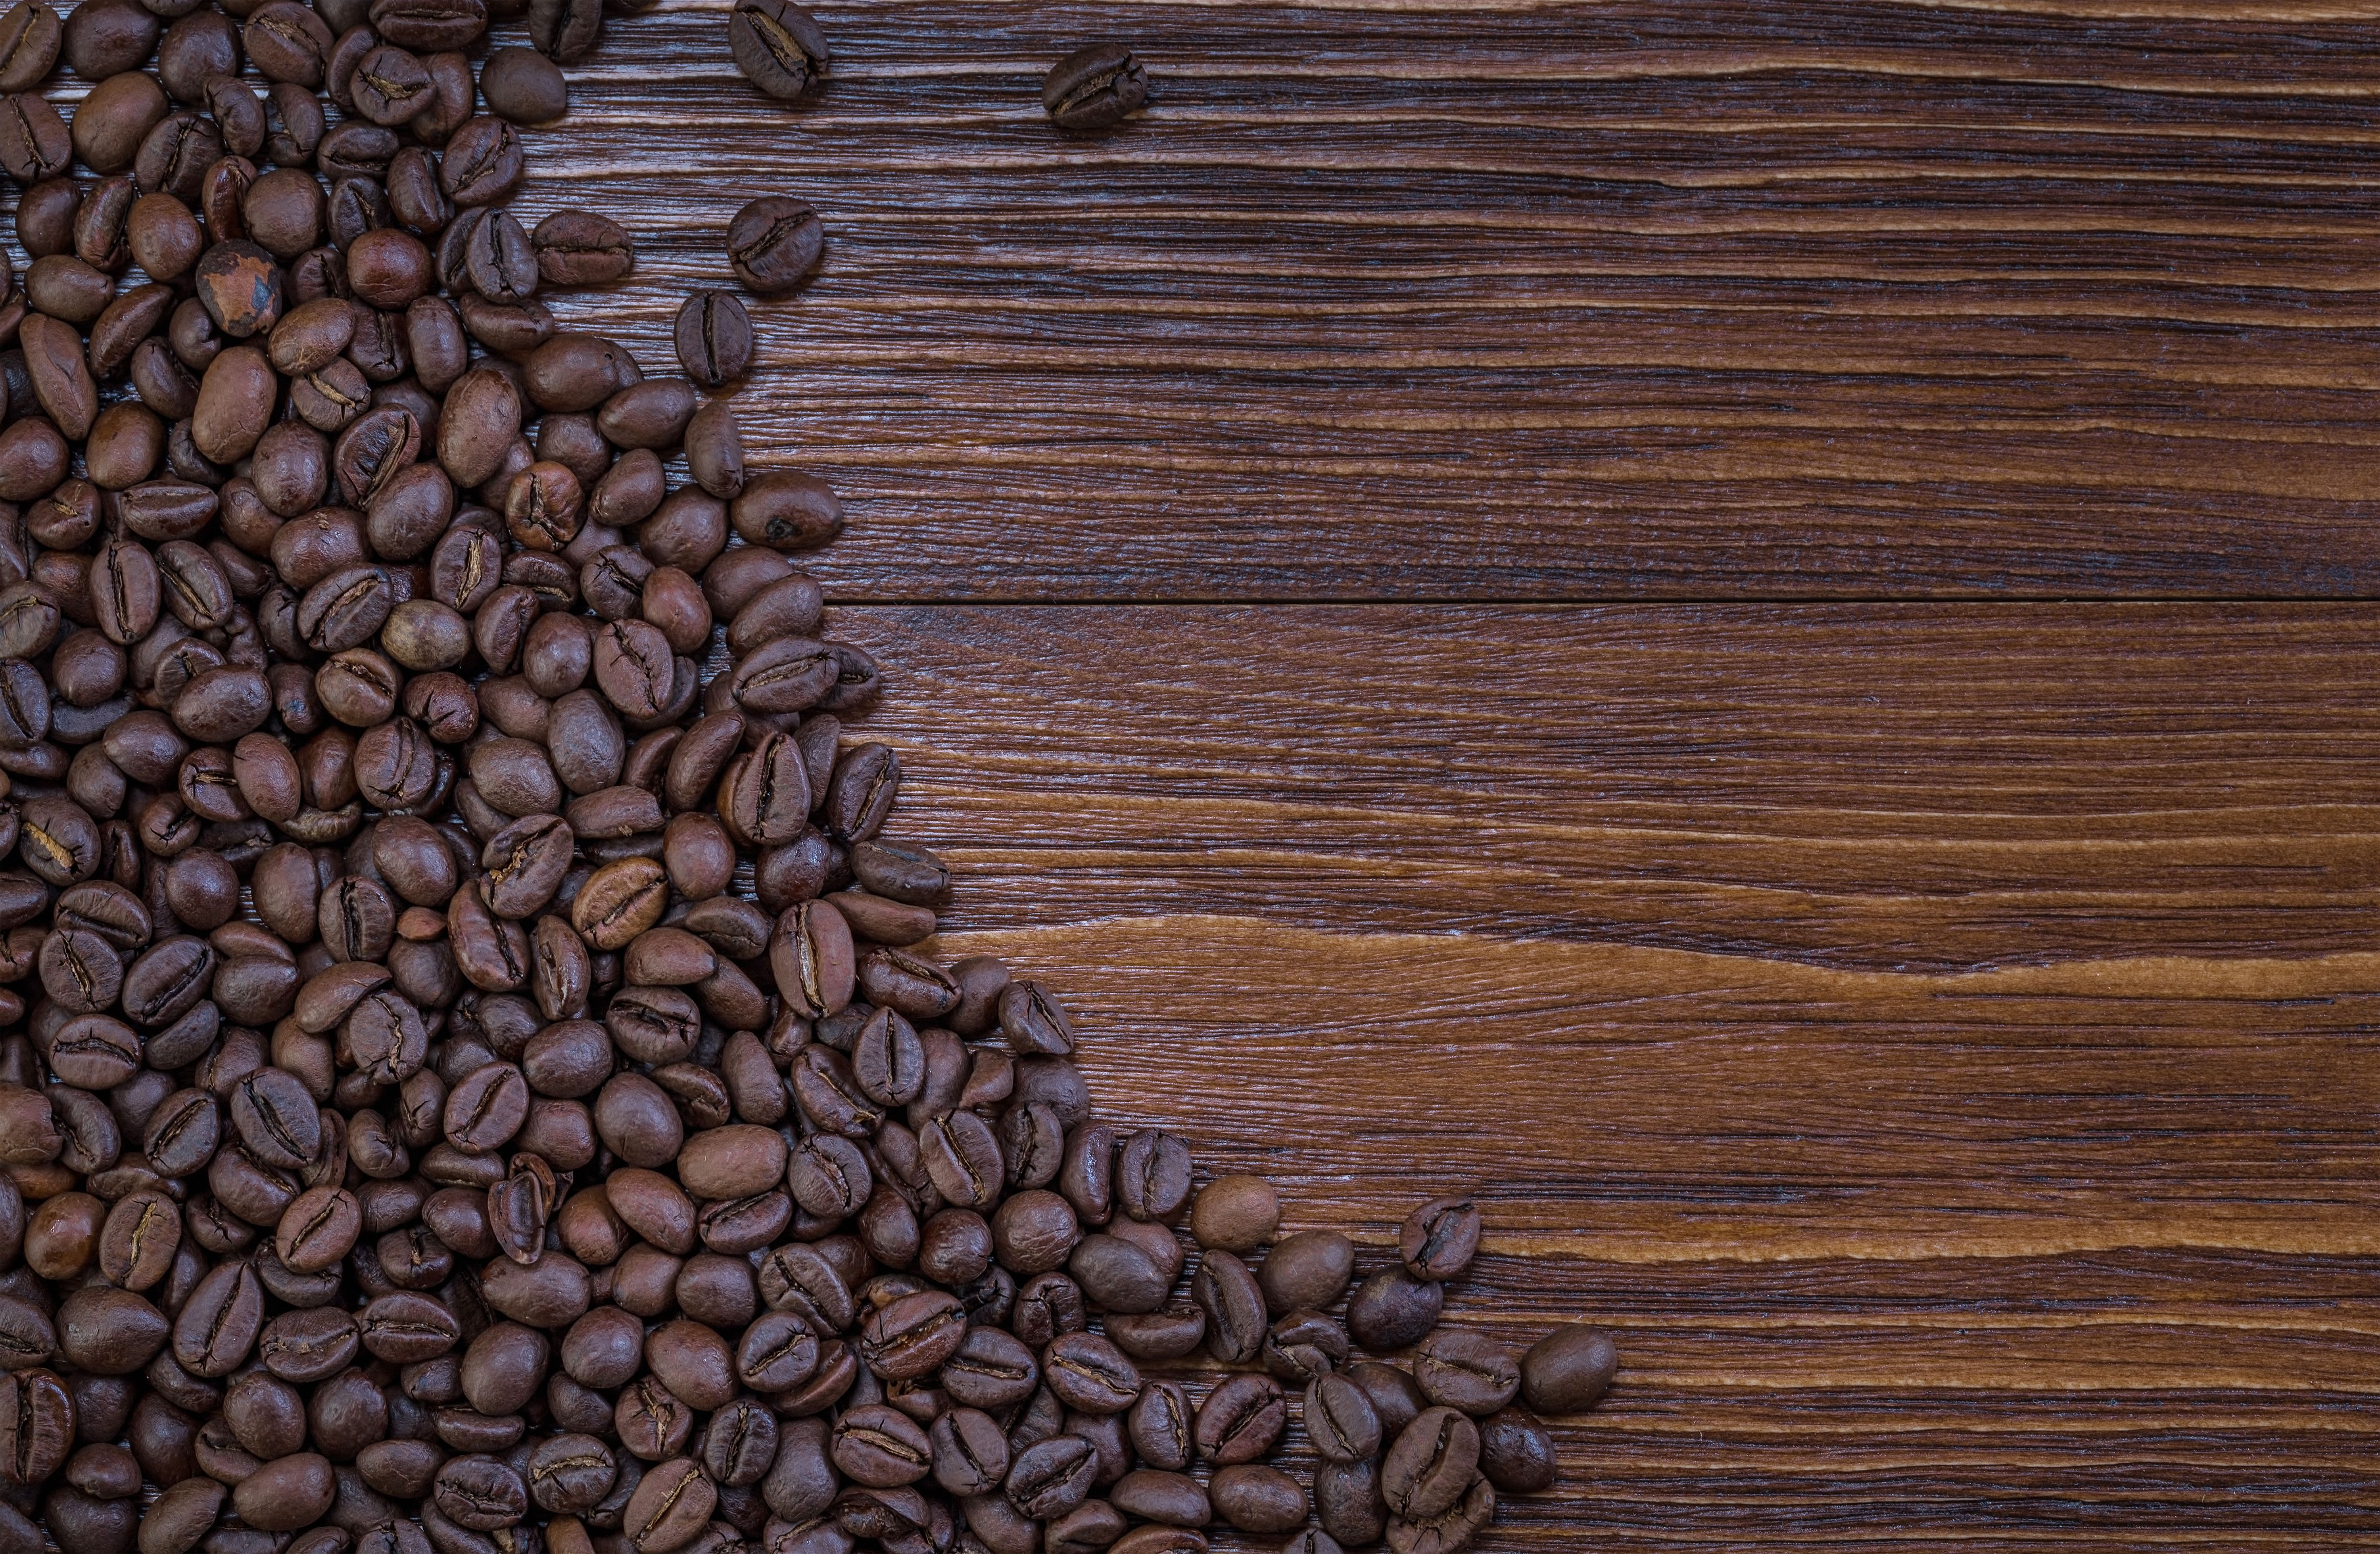 Coffee Beans Wooden Background Gallery Yopriceville